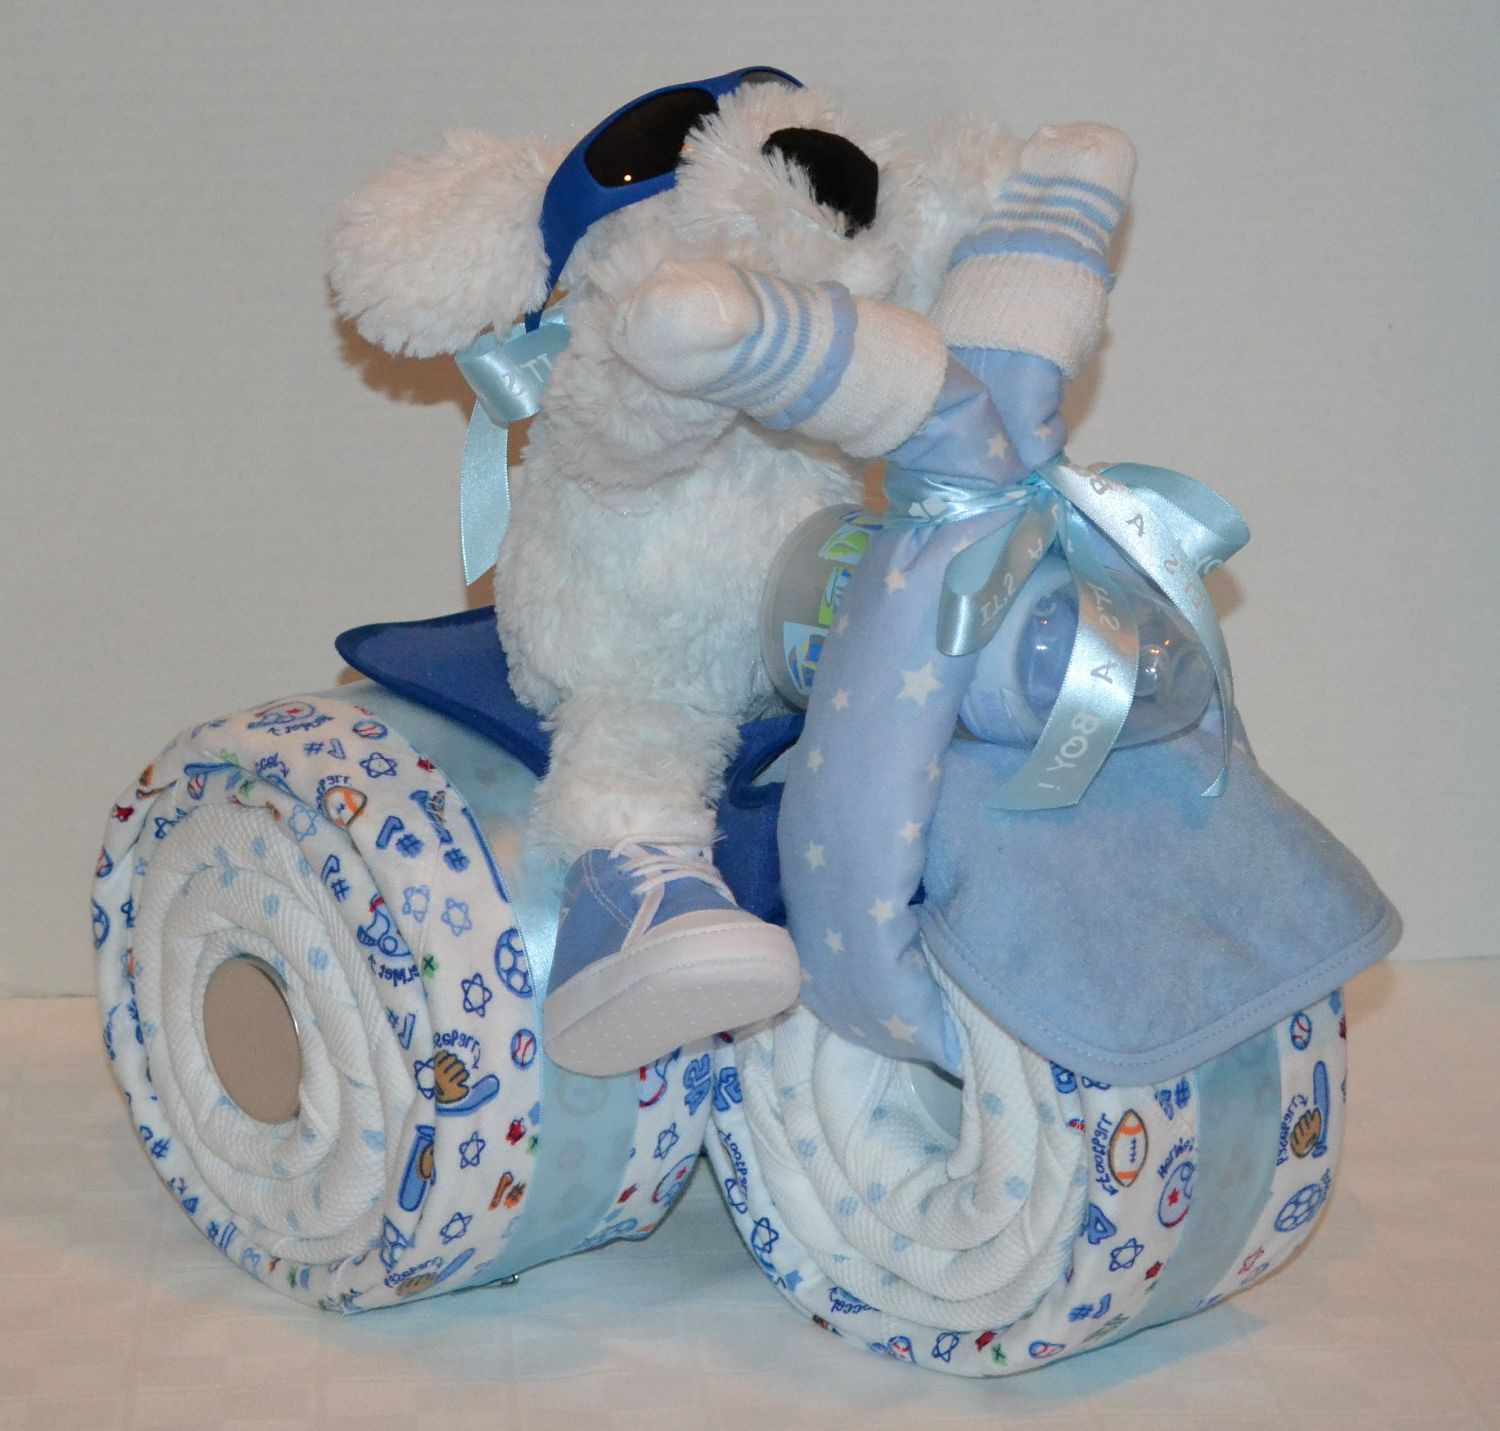 Best ideas about Gift Ideas For Toddler Boys . Save or Pin Baby Shower Gifts For Boys Now.